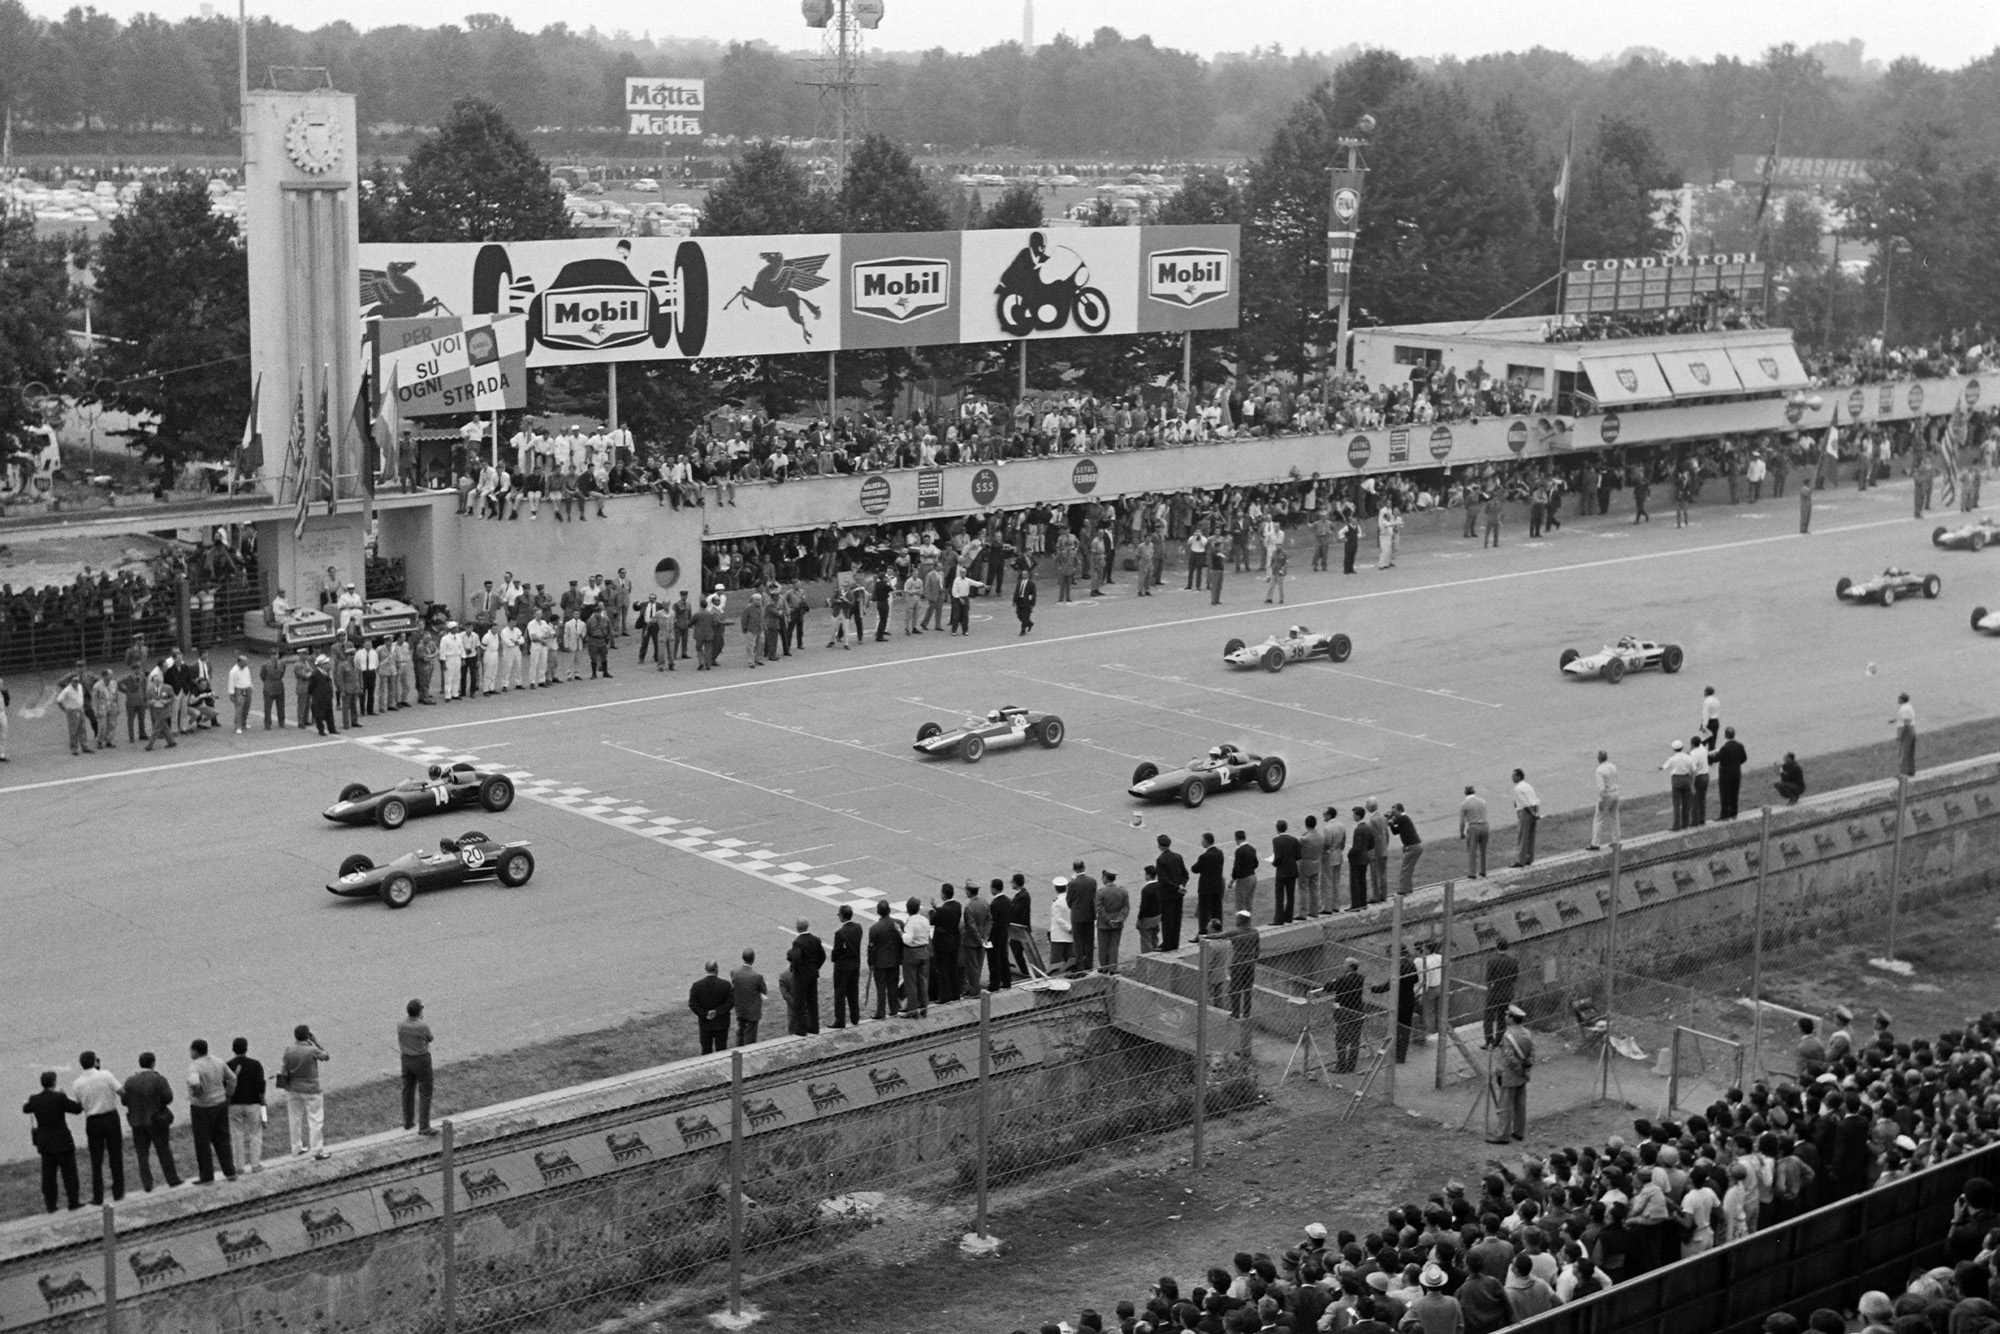 Clark and Hill lead the field away at the race start